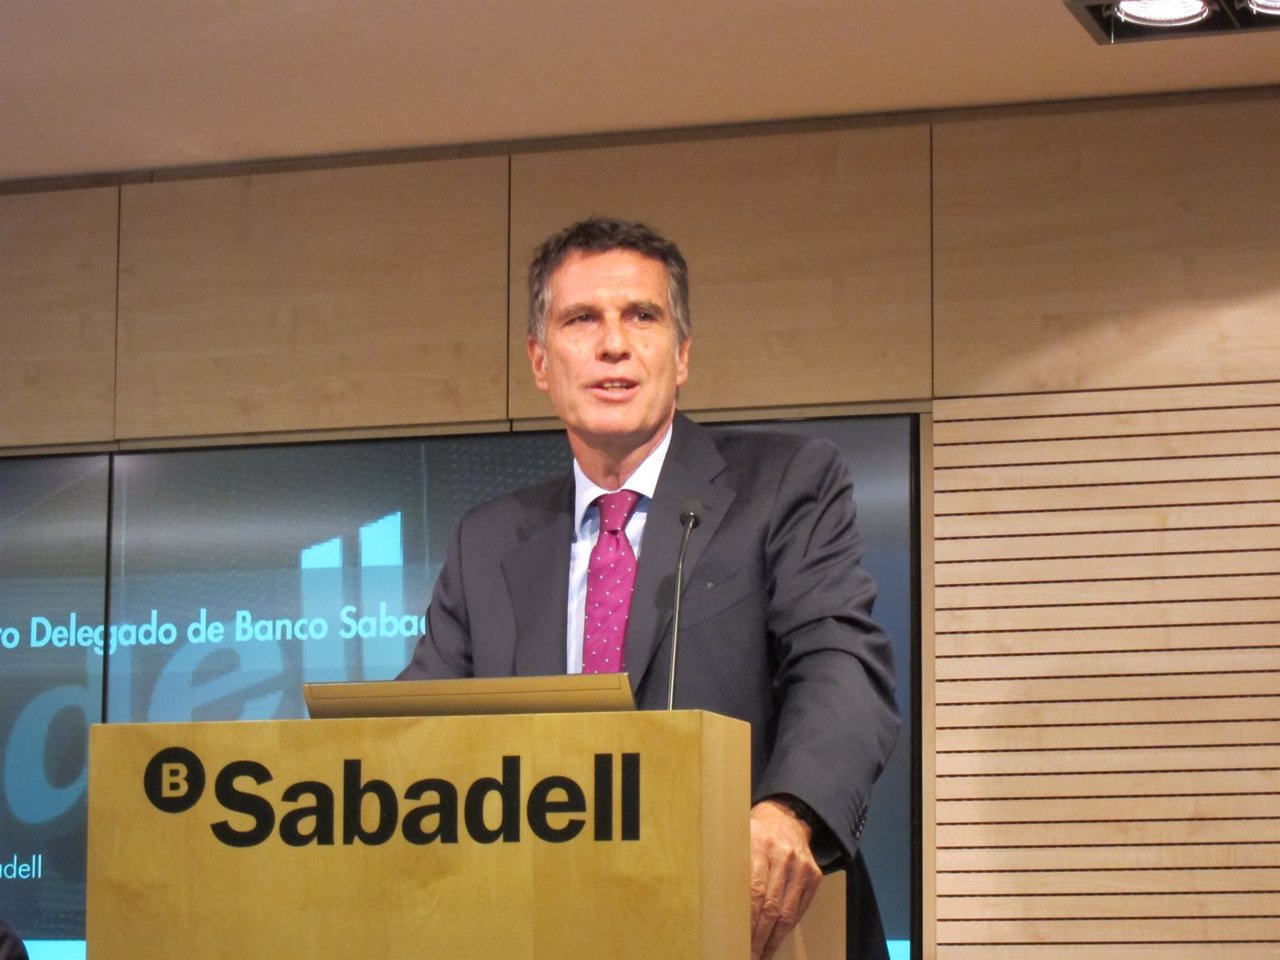 Clausula Suelo Banco Sabadell Ultimas Noticias Banco Sabadell Recurrirá Para Defender La Transparencia De